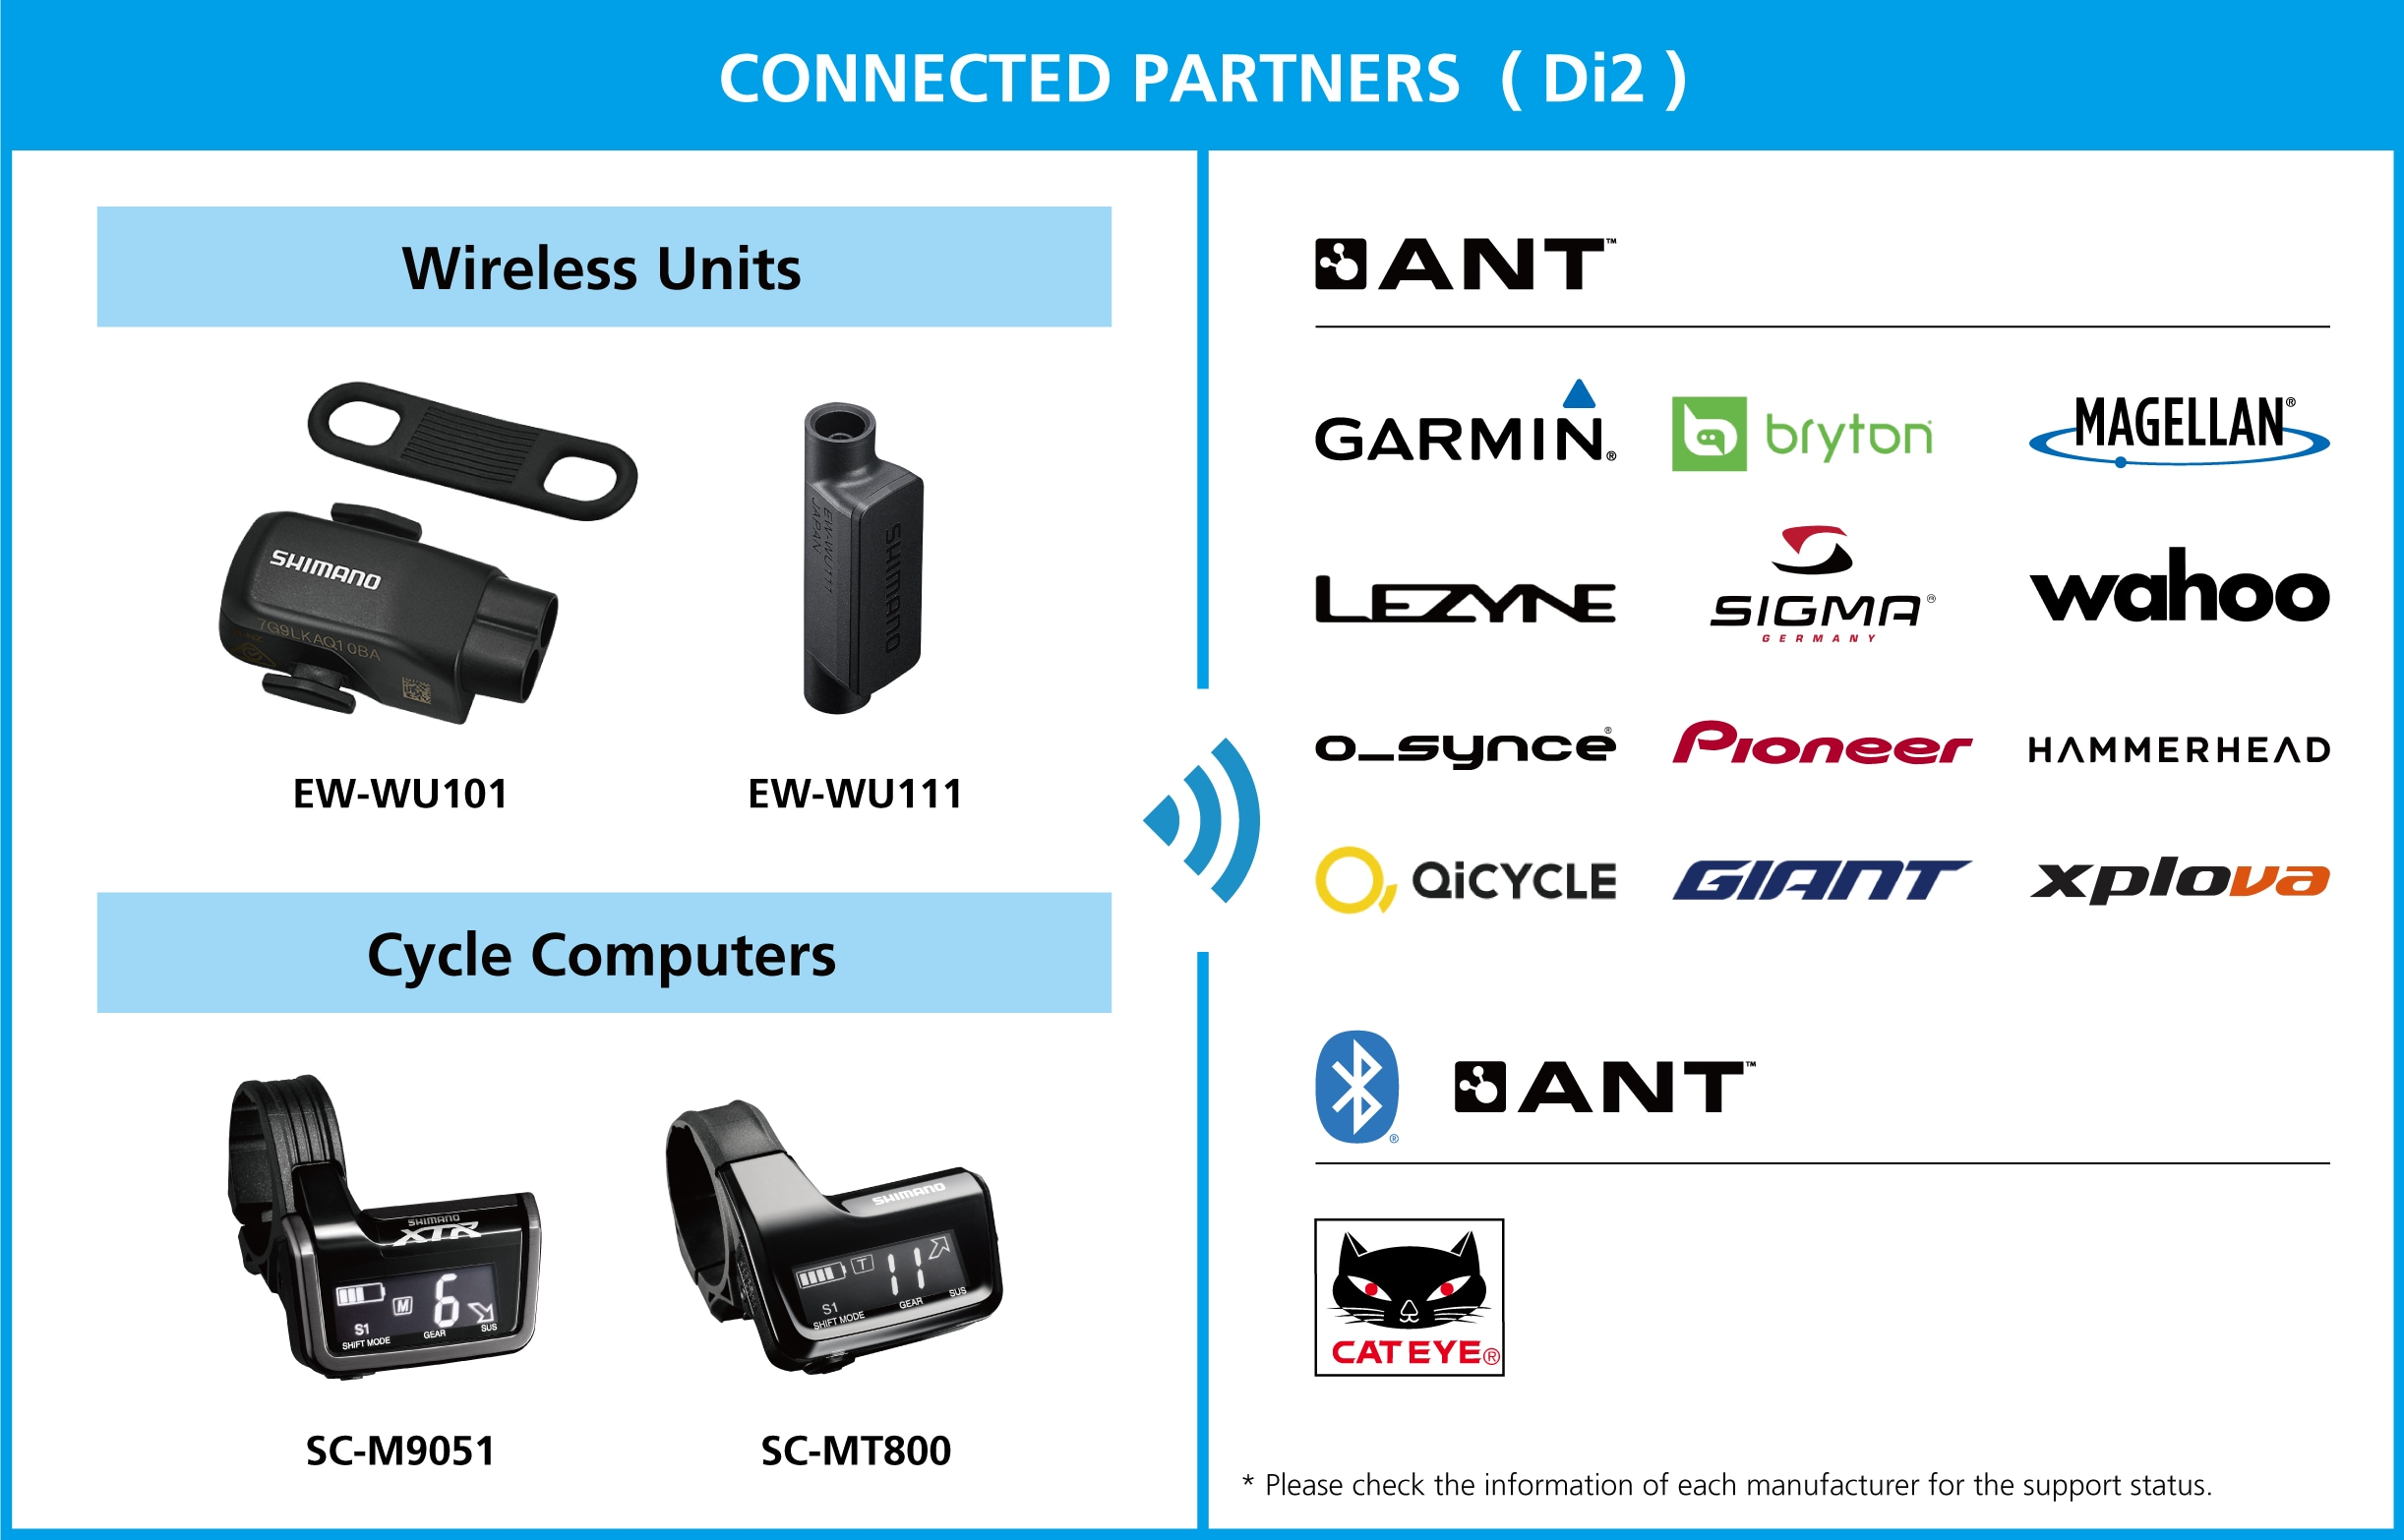 CONNECTED PARTNERS Di2